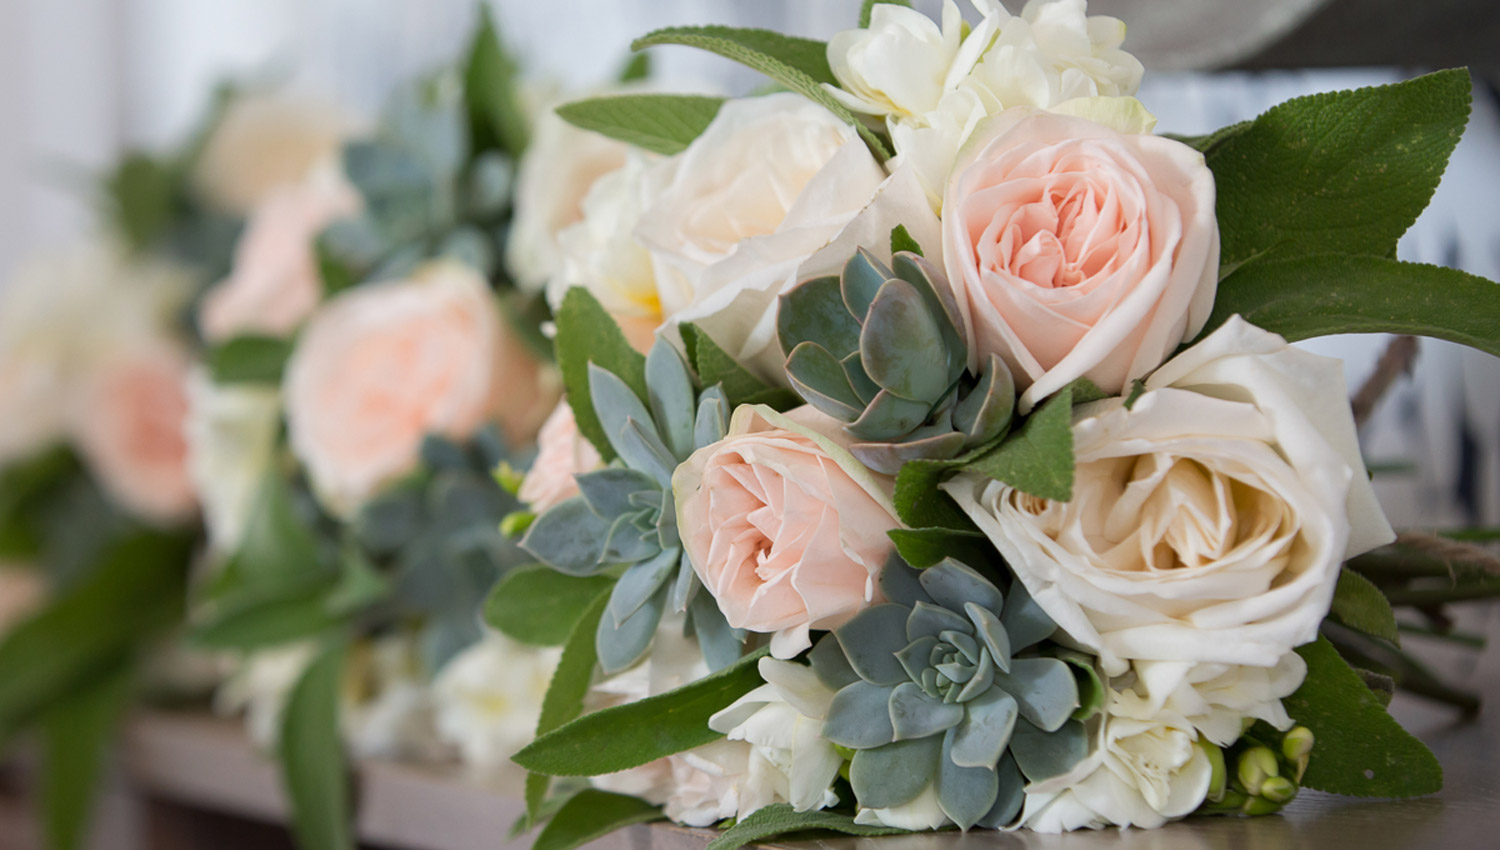 13 steps to buy wedding flowers online